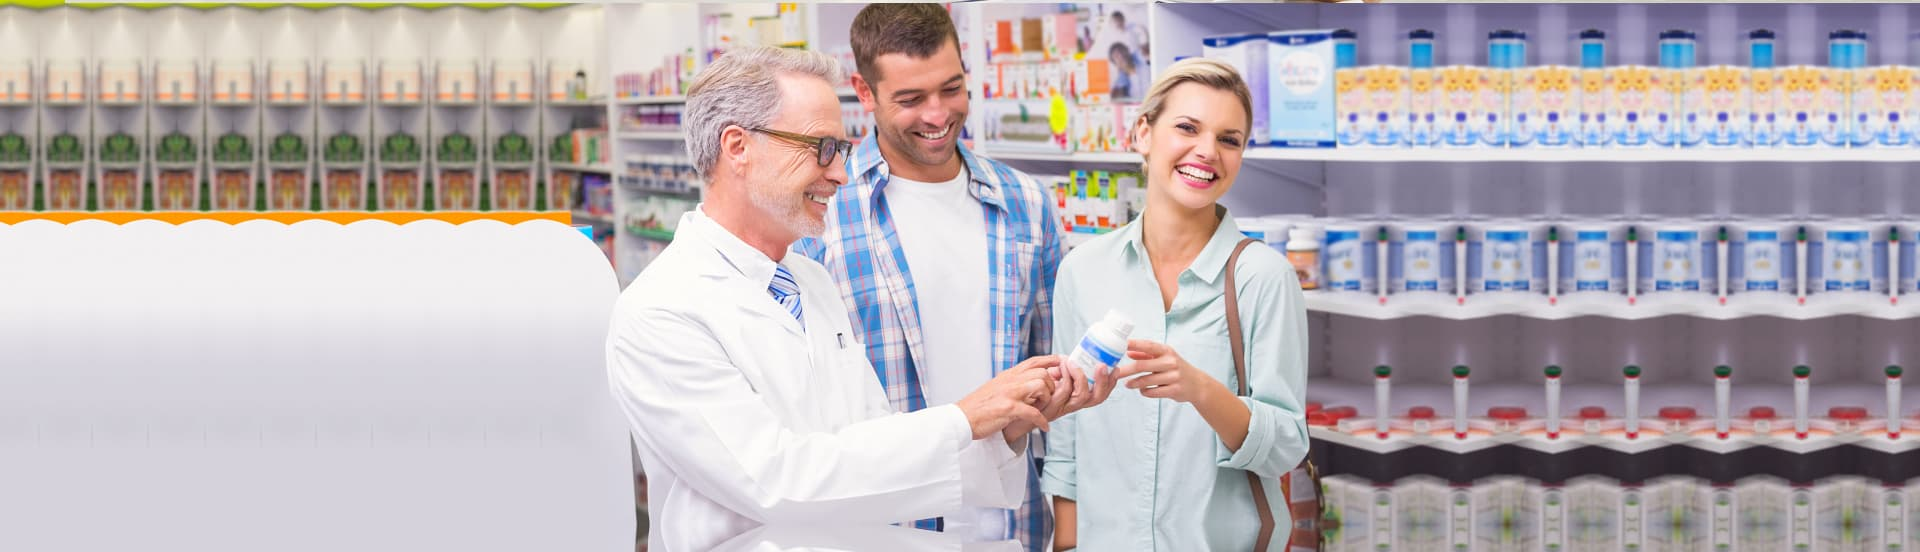 pharmacist holding medicine and smiling couple